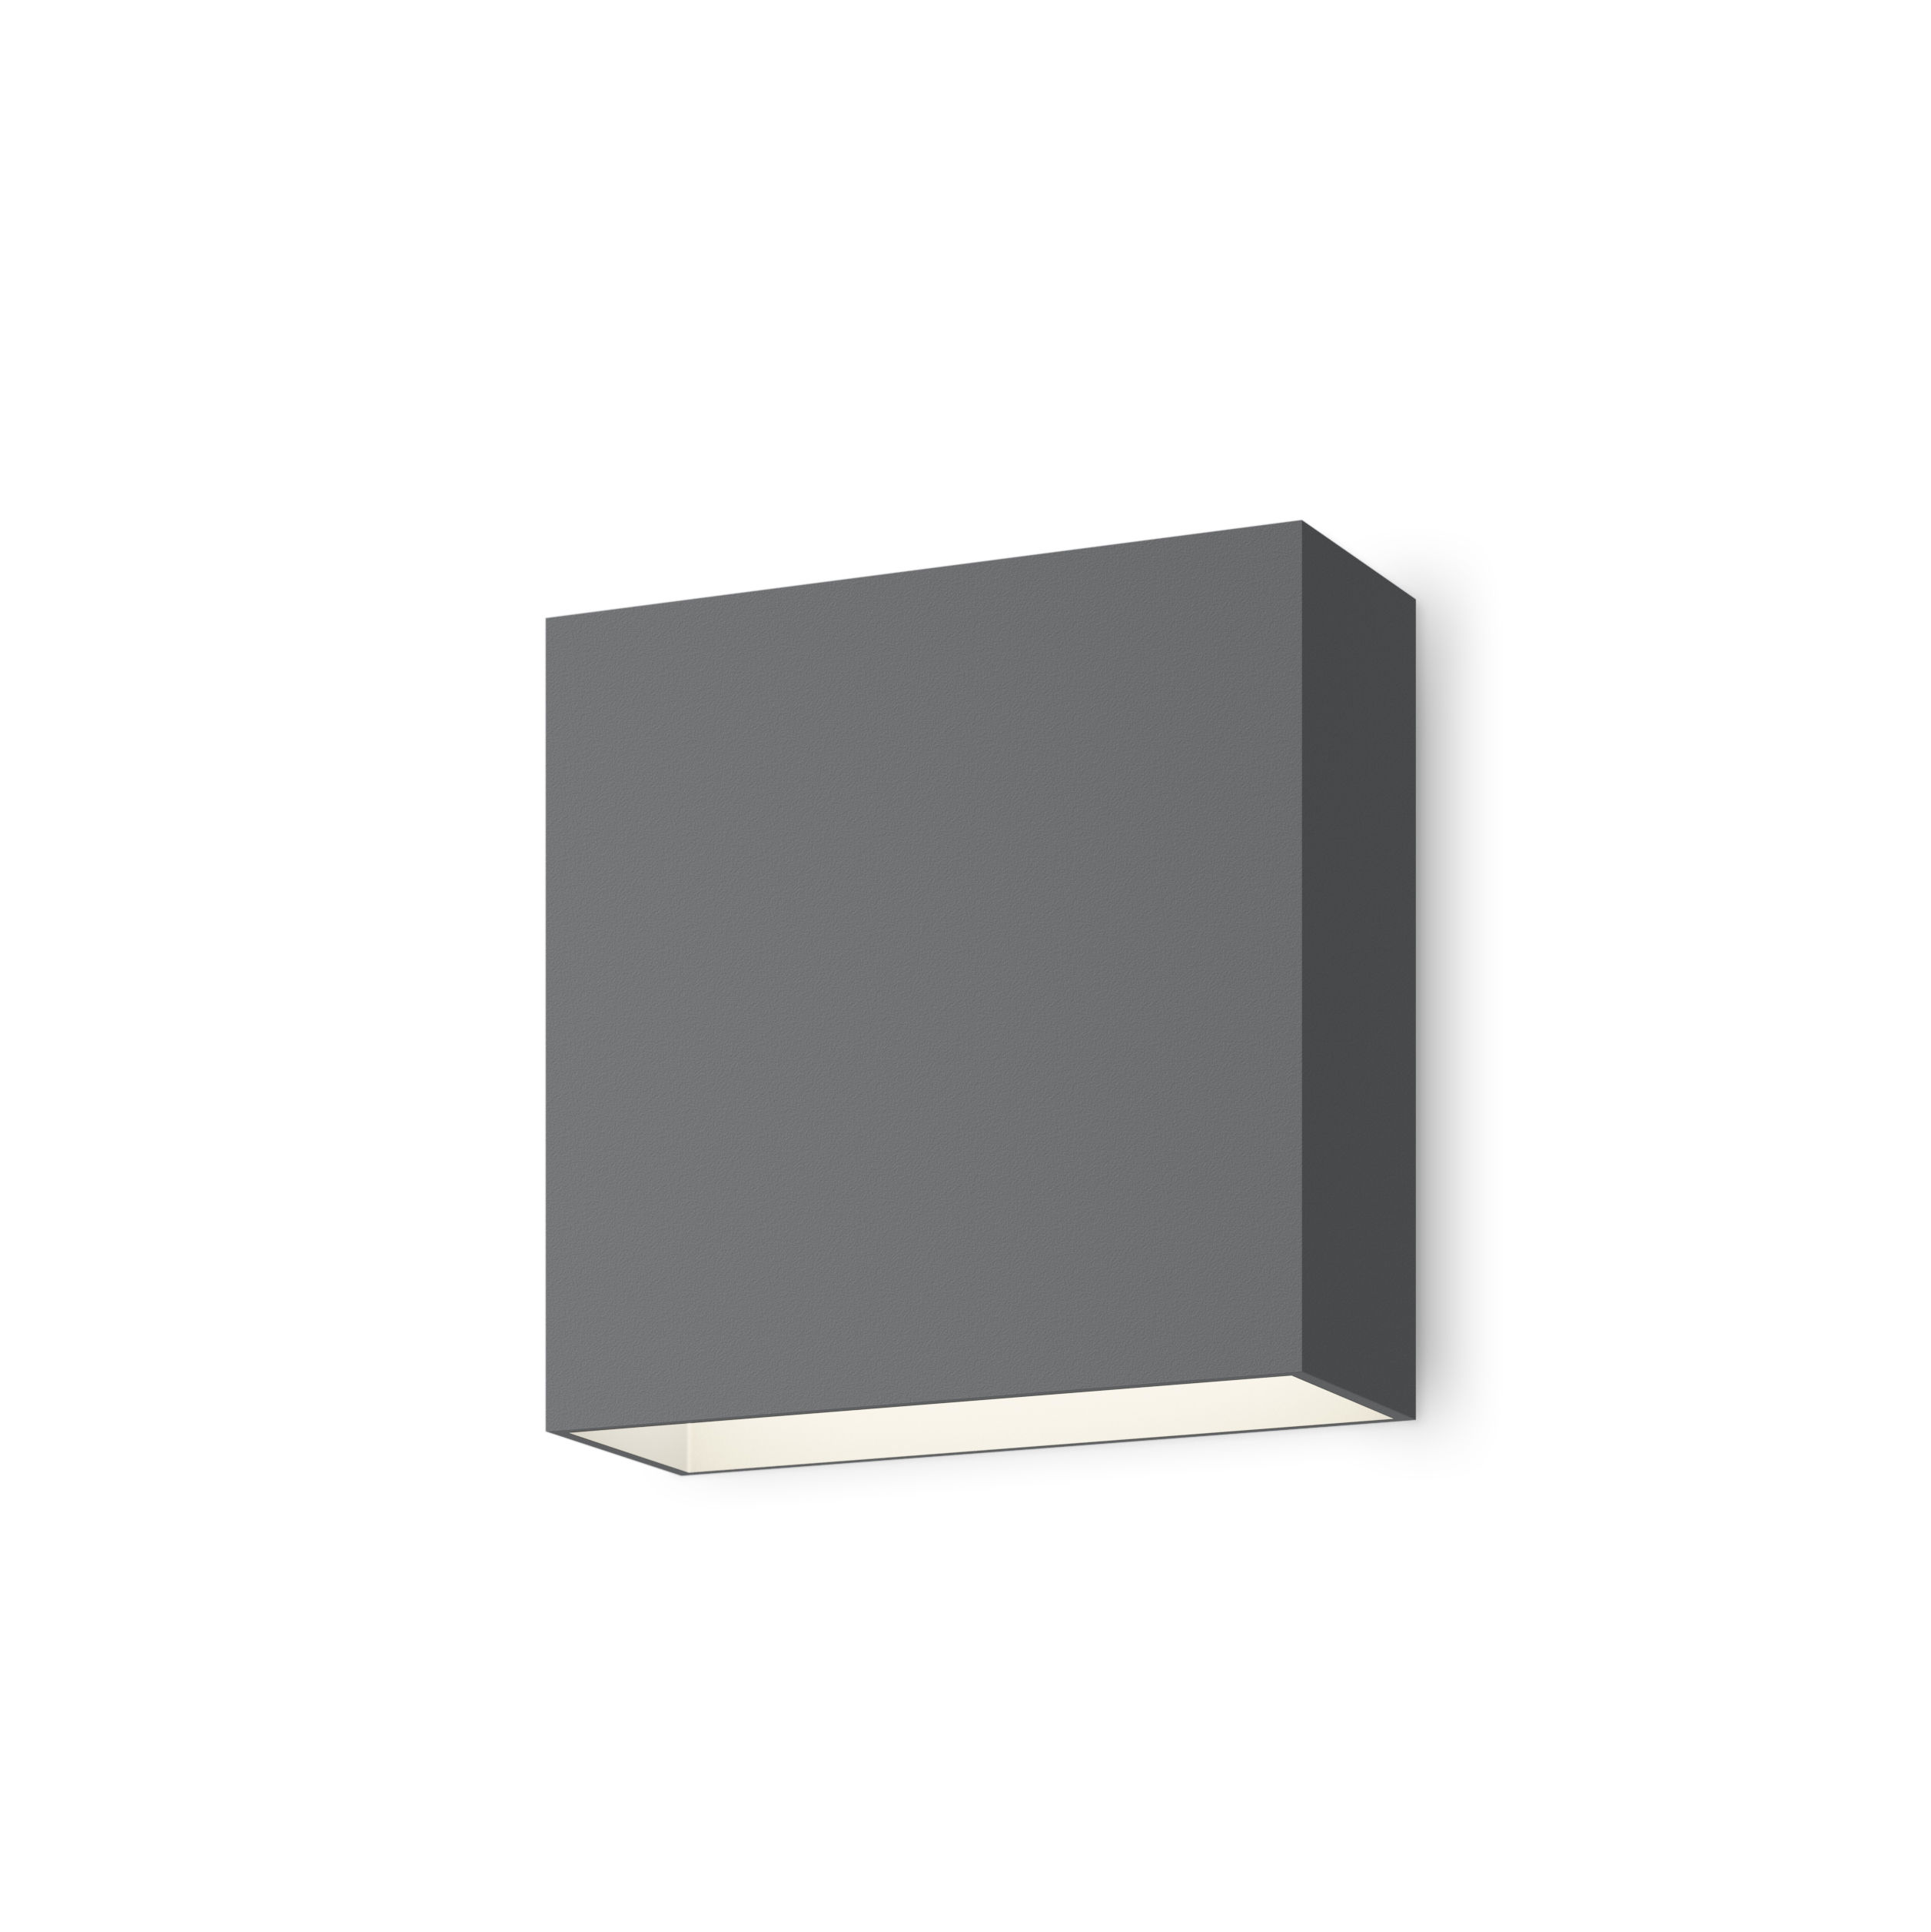 Lighting - Wall Lights - Structural LED Wall light - / 16 x 16 cm by Vibia - Grey - Lacquered aluminium